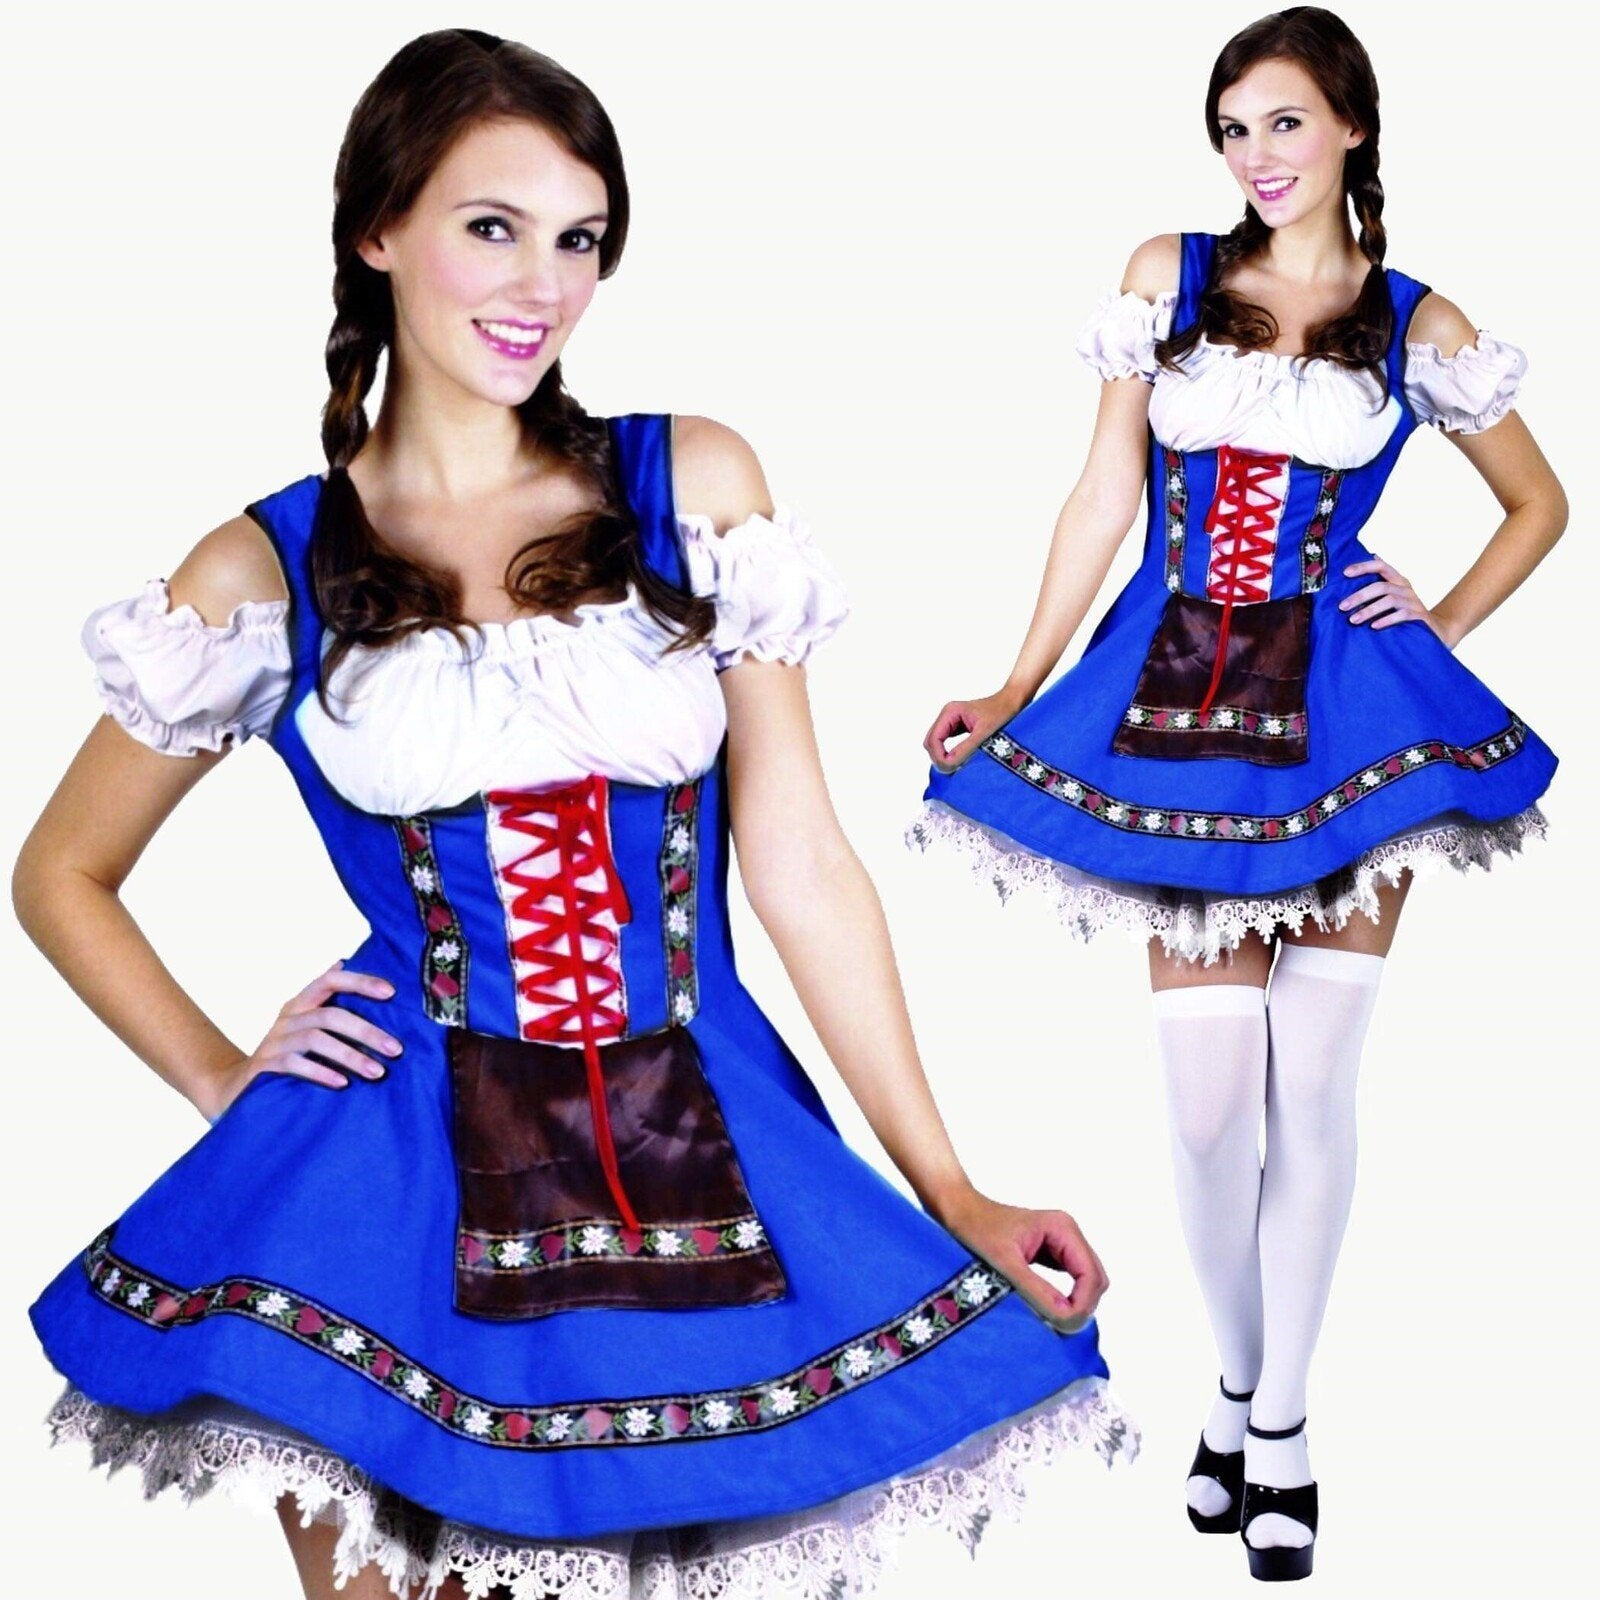 Oktoberfest Heidi Dress - The Costume Company | Fancy Dress Costumes Hire and Purchase Brisbane and Australia